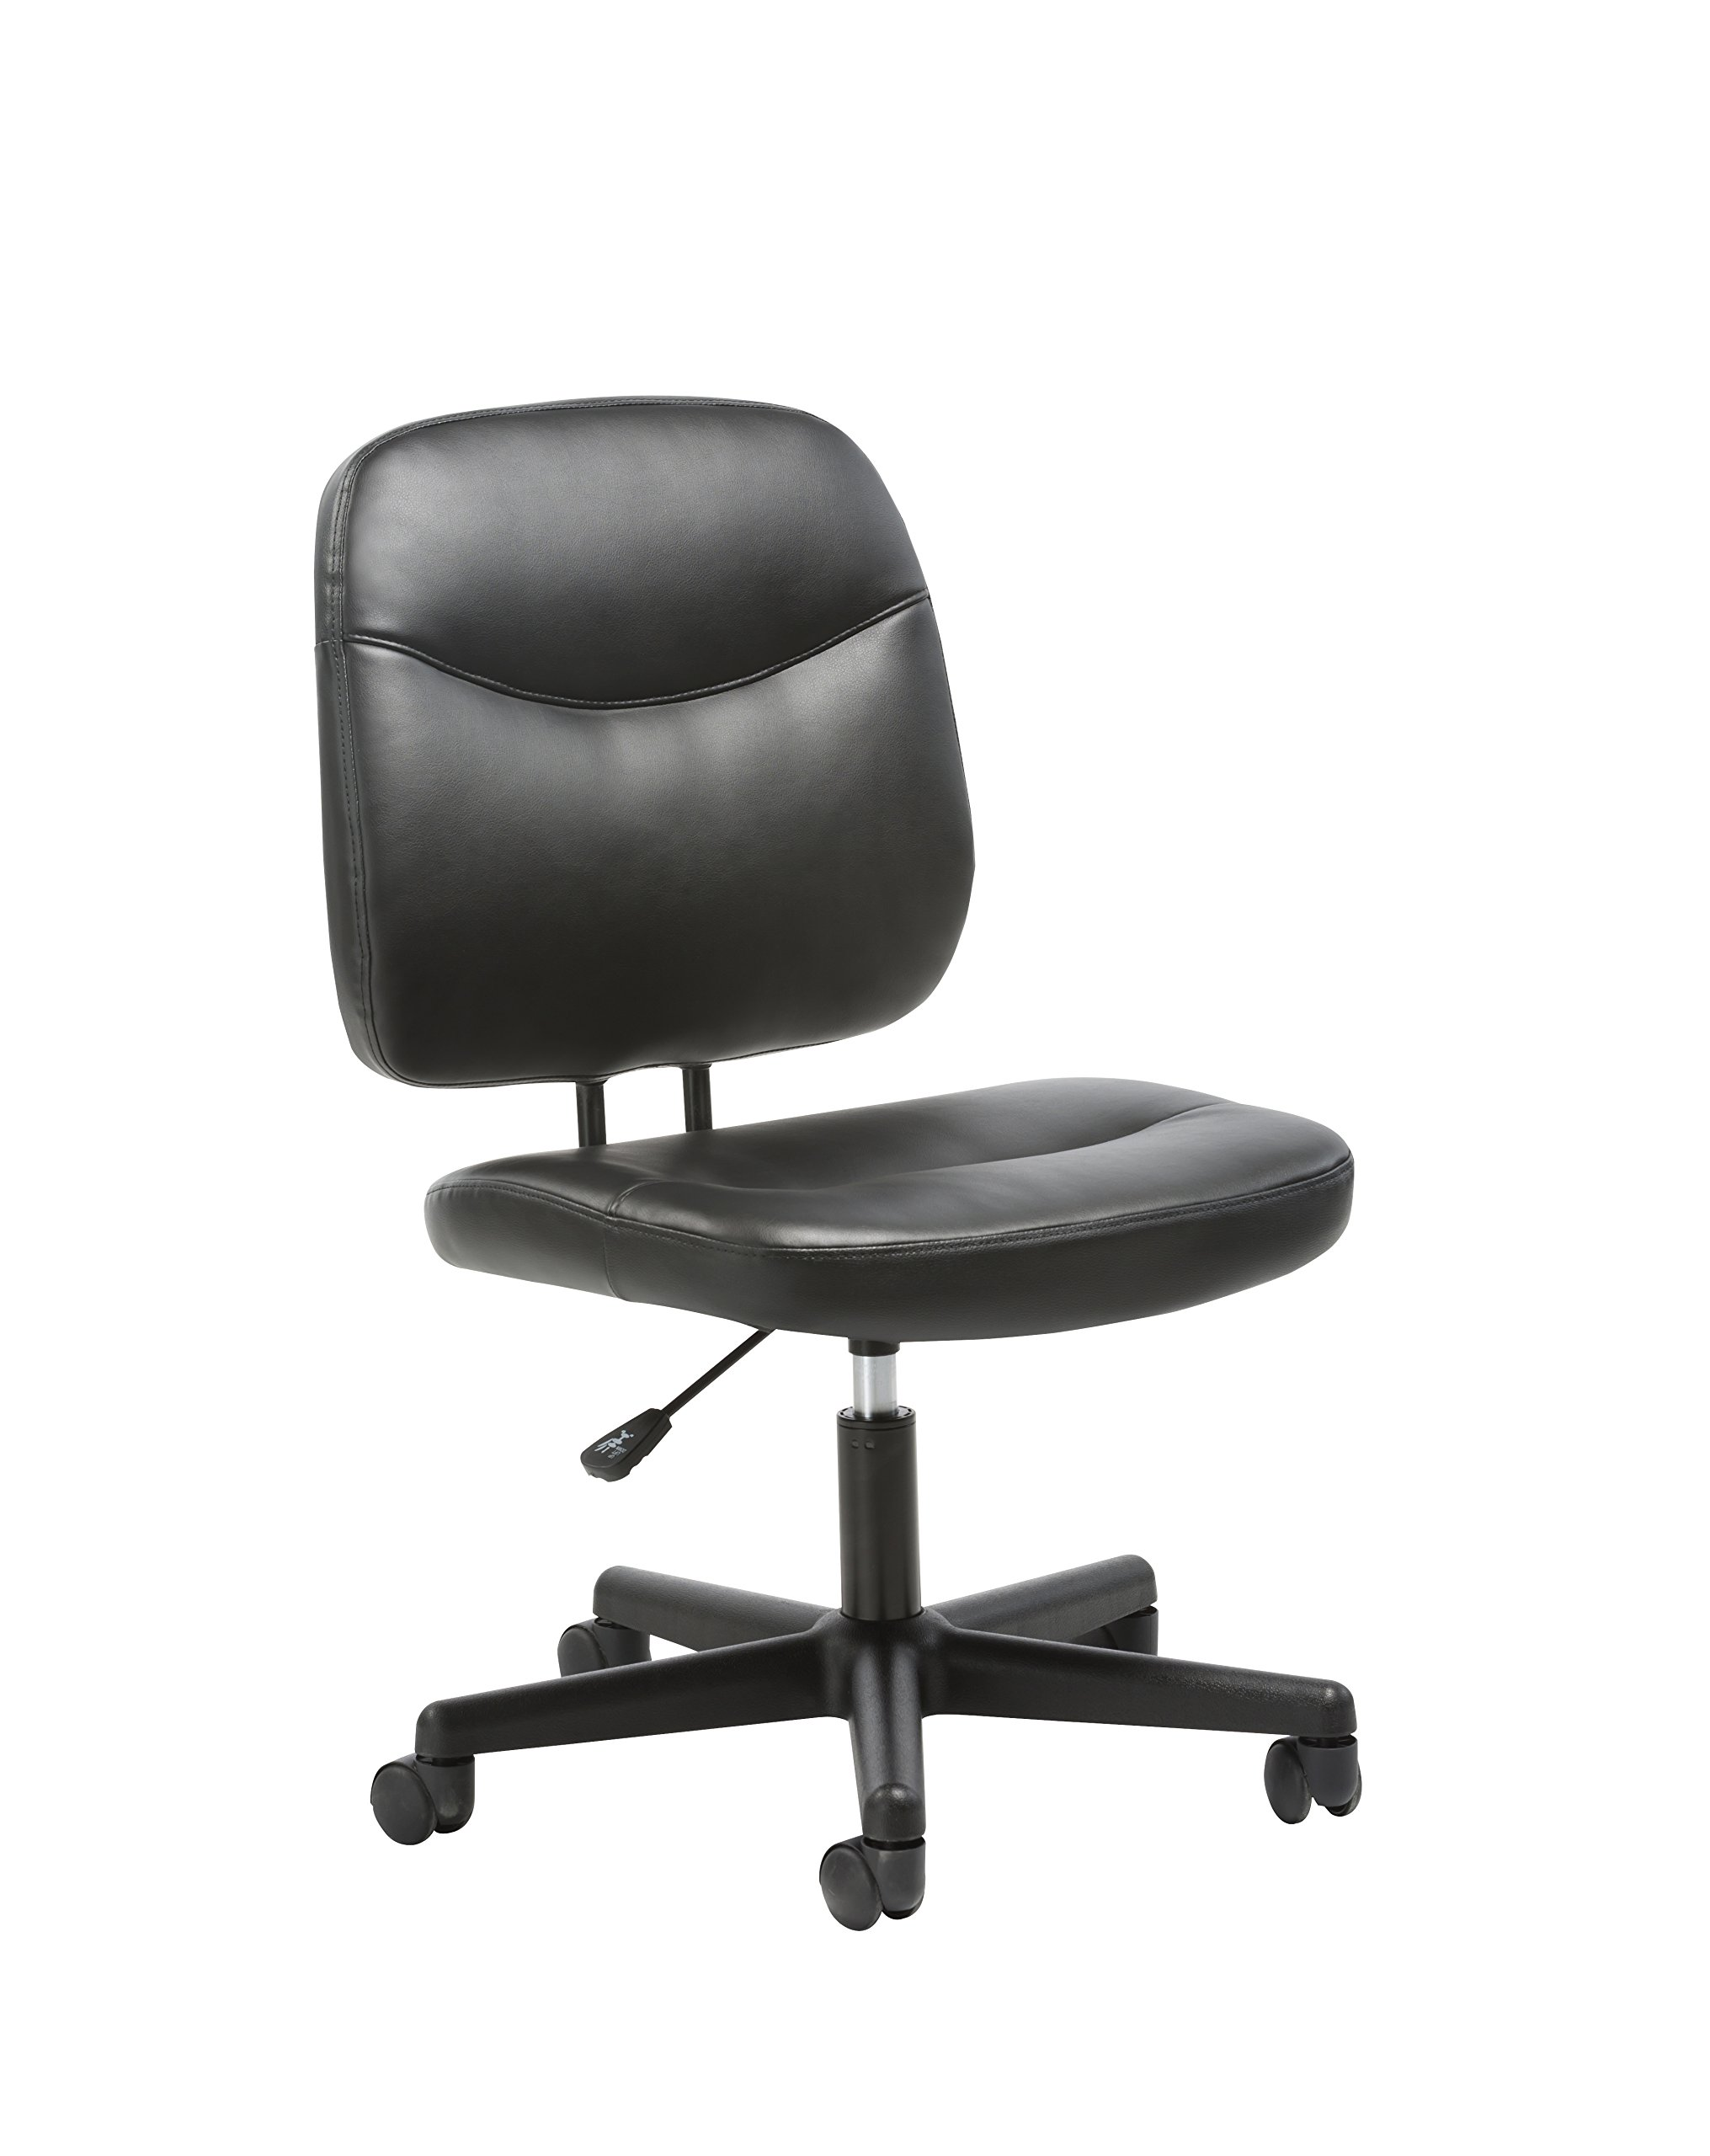 Essentials Leather Task Chair - Ergonomic Adjustable Office Chair, Black (ESS-6005) by OFM